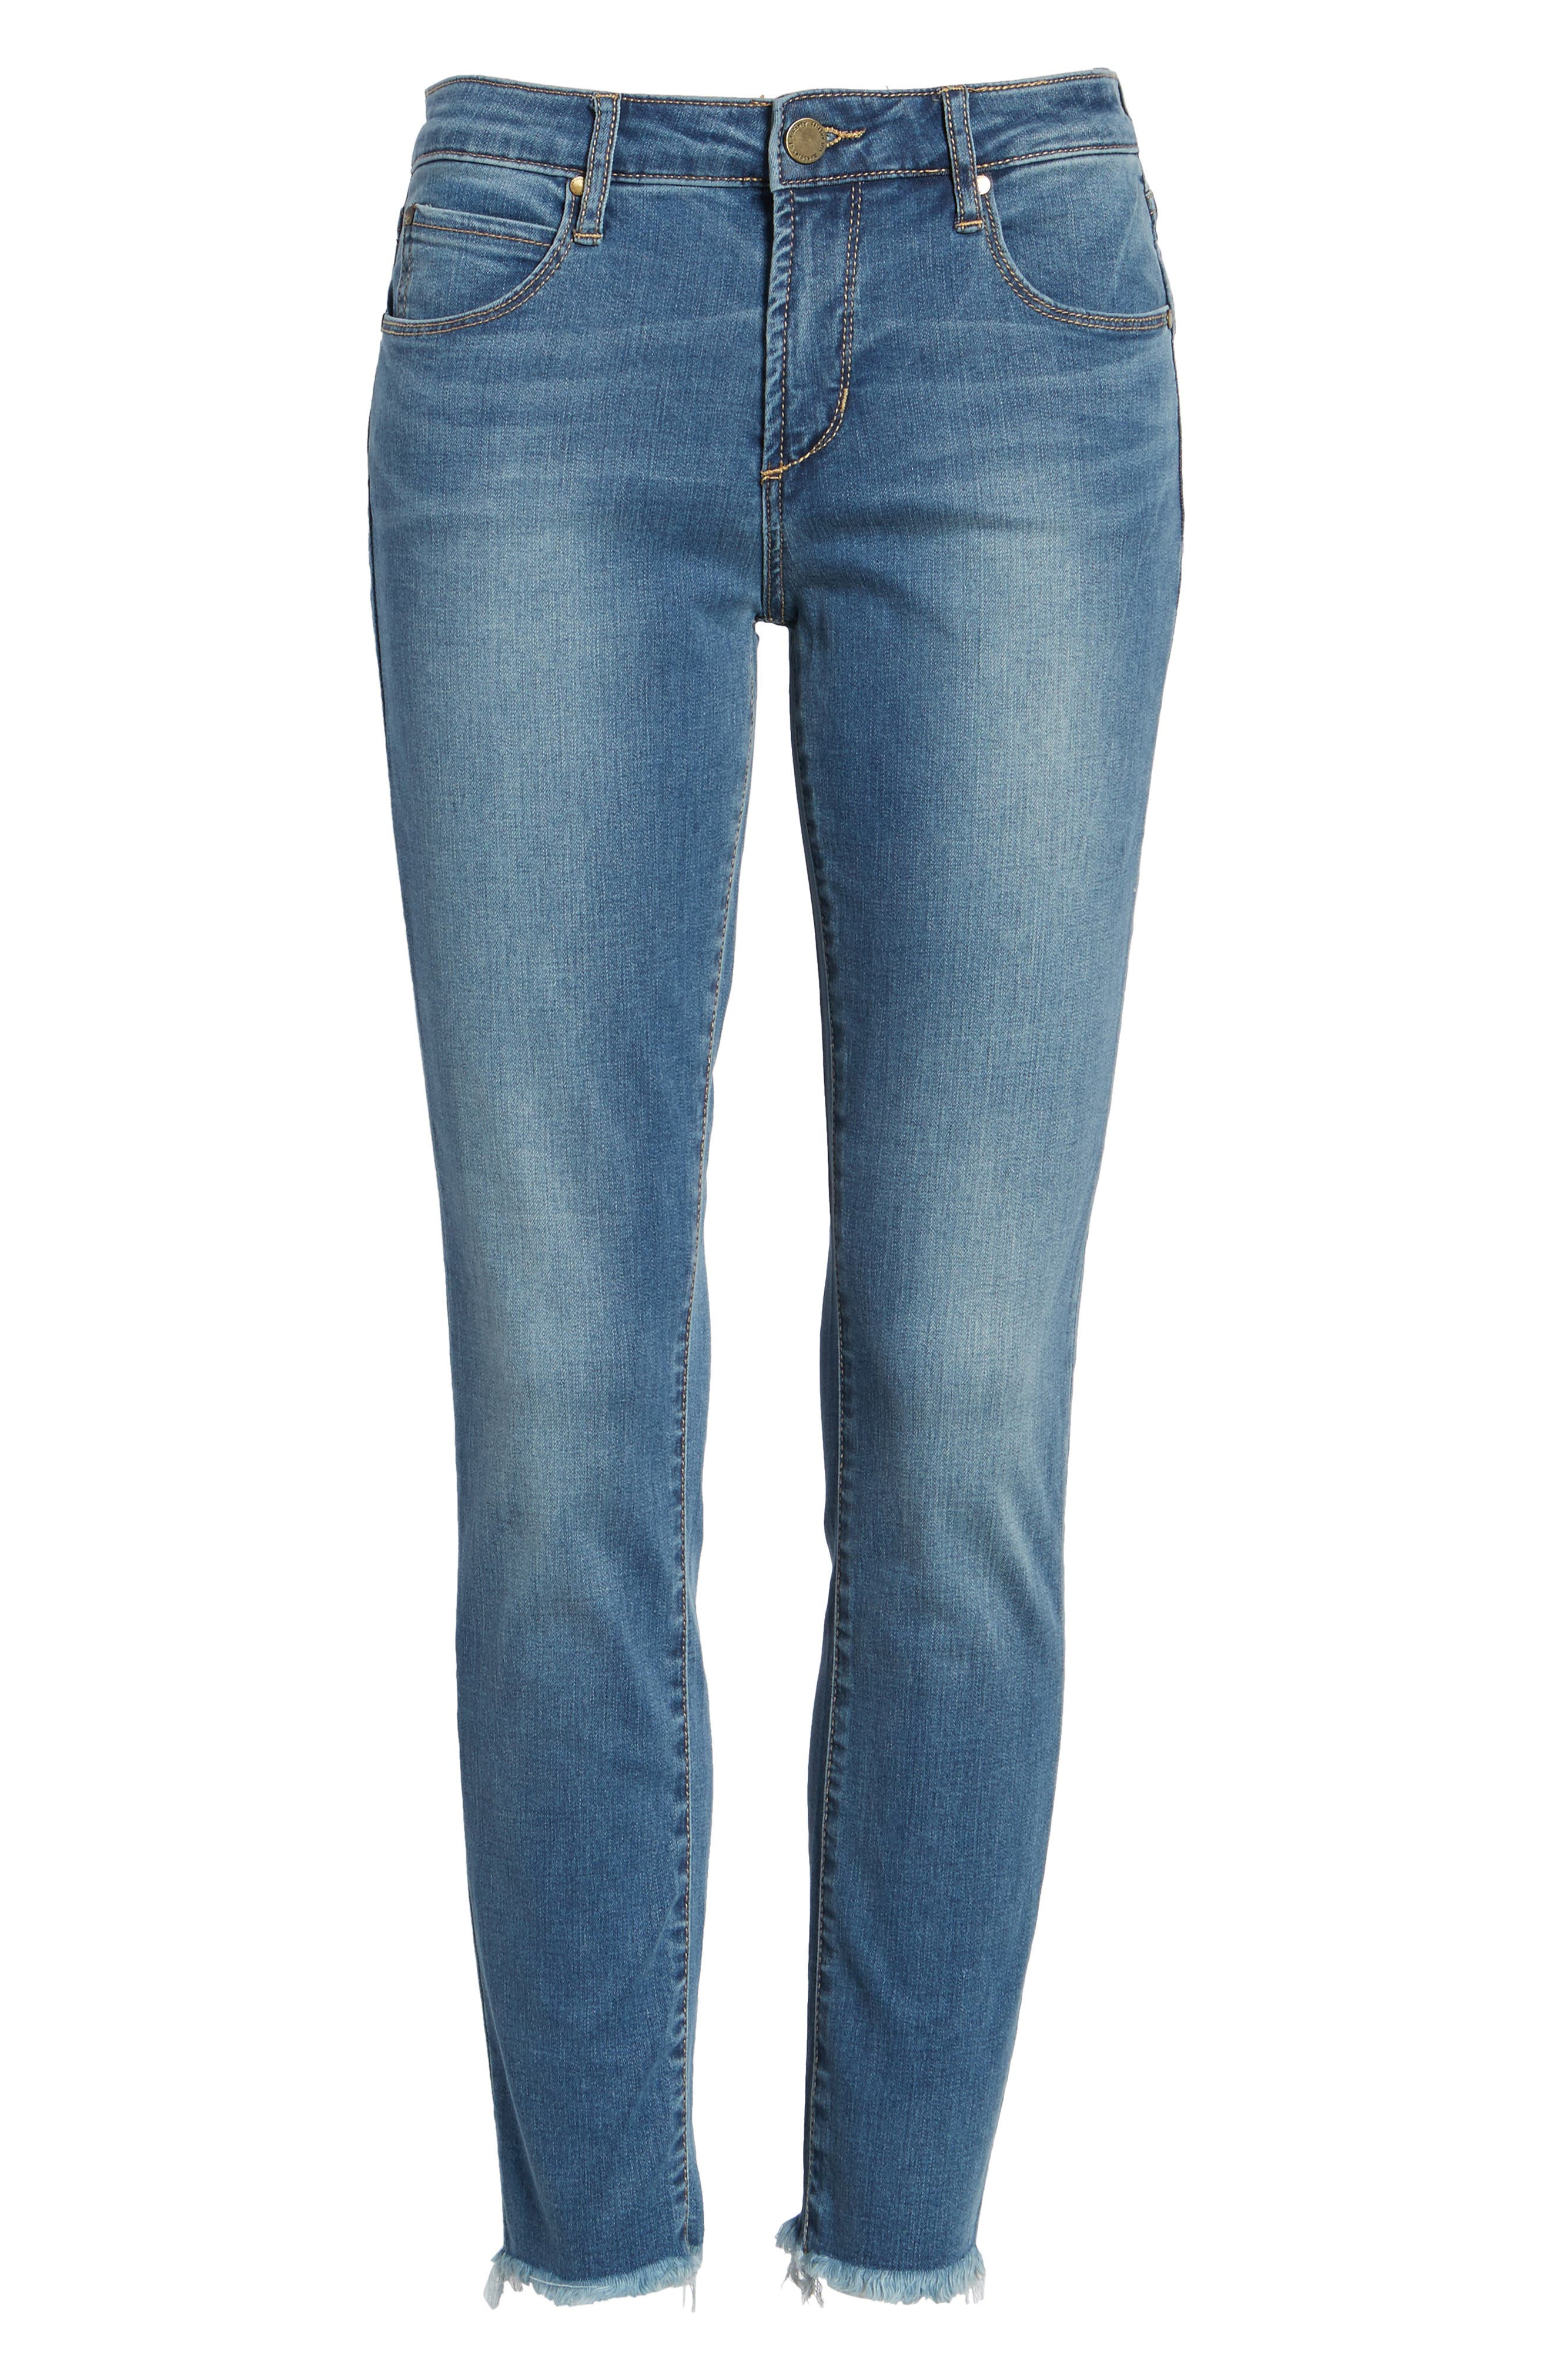 Carly Crop Skinny Jeans,                             Alternate thumbnail 6, color,                             498